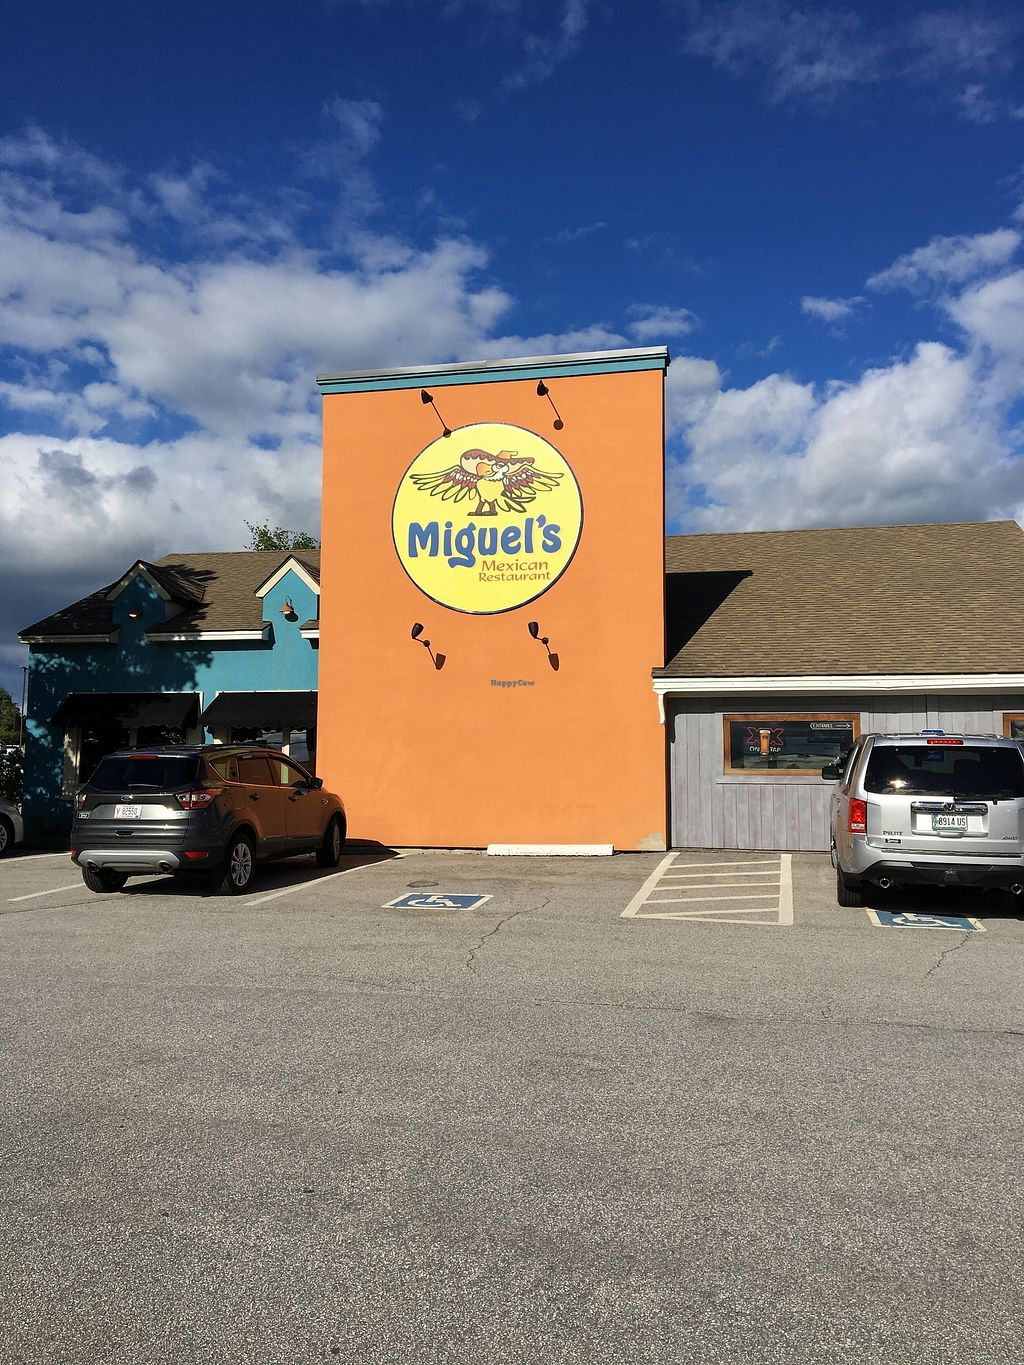 """Photo of Miguel's Mexican Restaurant  by <a href=""""/members/profile/sophiefrenchfry"""">sophiefrenchfry</a> <br/>Exterior of Miguel's <br/> June 20, 2017  - <a href='/contact/abuse/image/30051/271508'>Report</a>"""